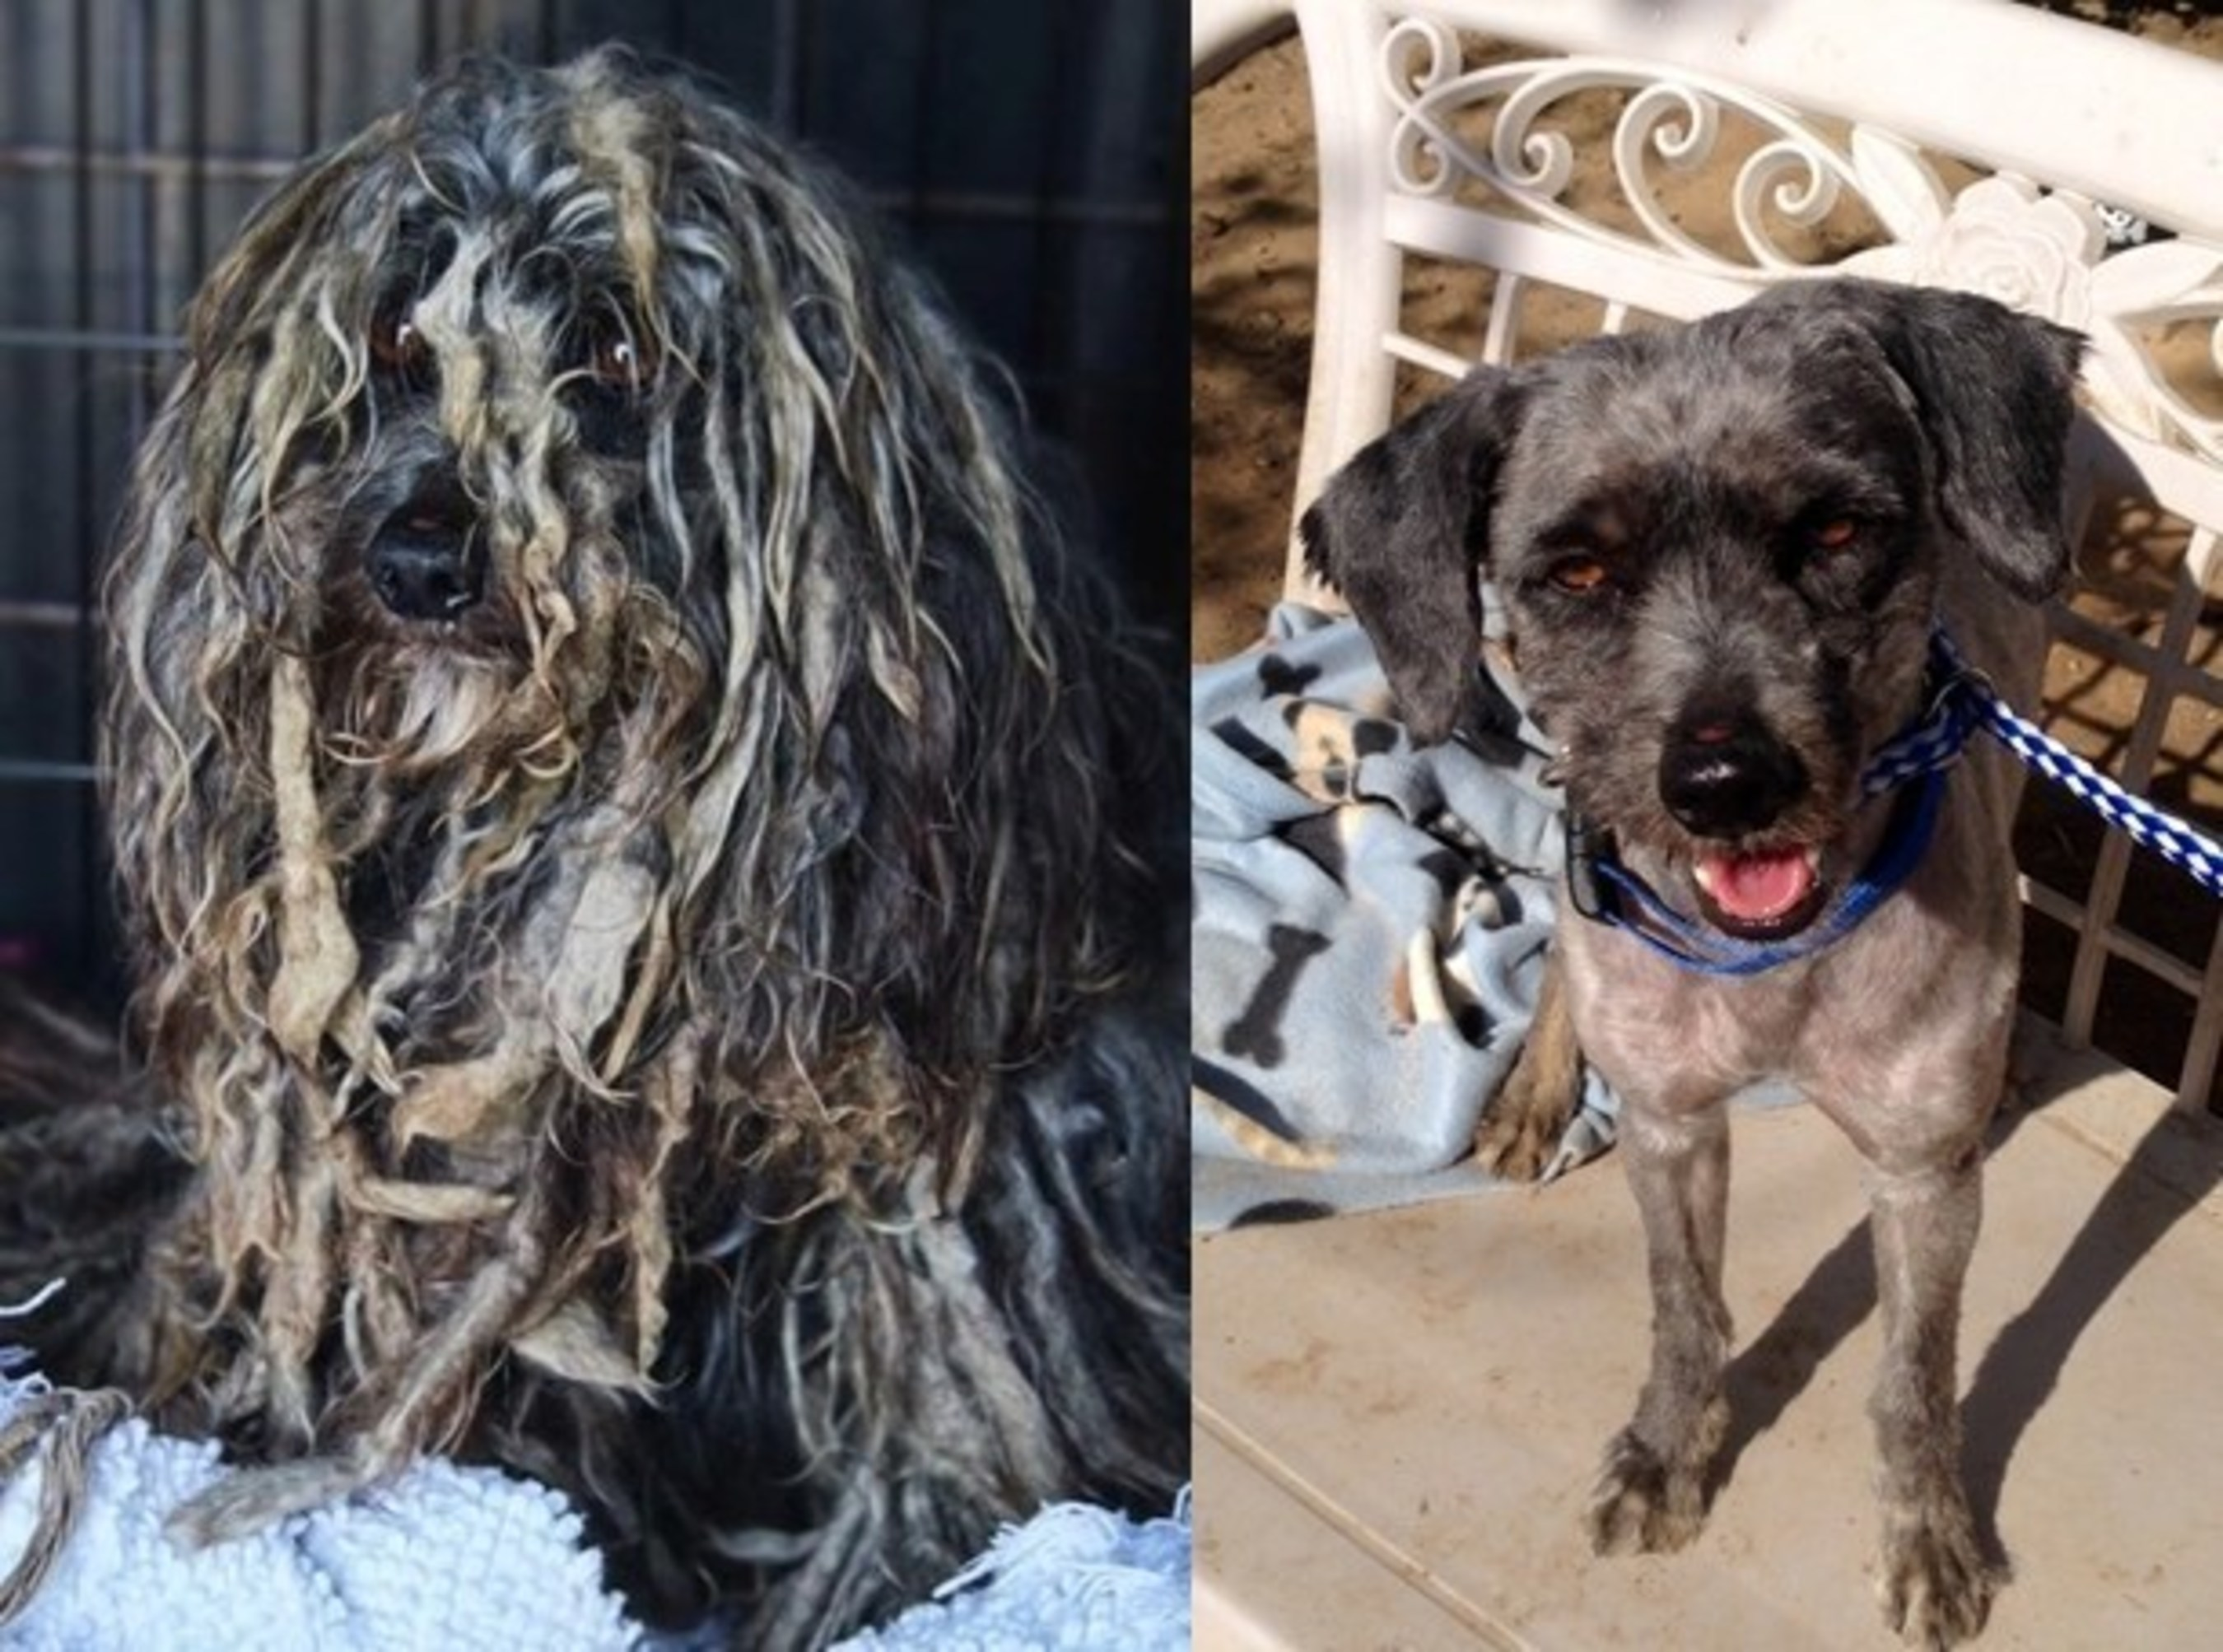 Bob Marley was aptly named for his dreadlocked appearance, but while the look worked for the musician, this pup was uncomfortably miserable - and homeless. Thanks to some much needed grooming and TLC, Bob's new clean-cut appearance has given him a new outlook on life, and the title of America's top doggie makeover in the 2015 Dirty Dogs Contest.